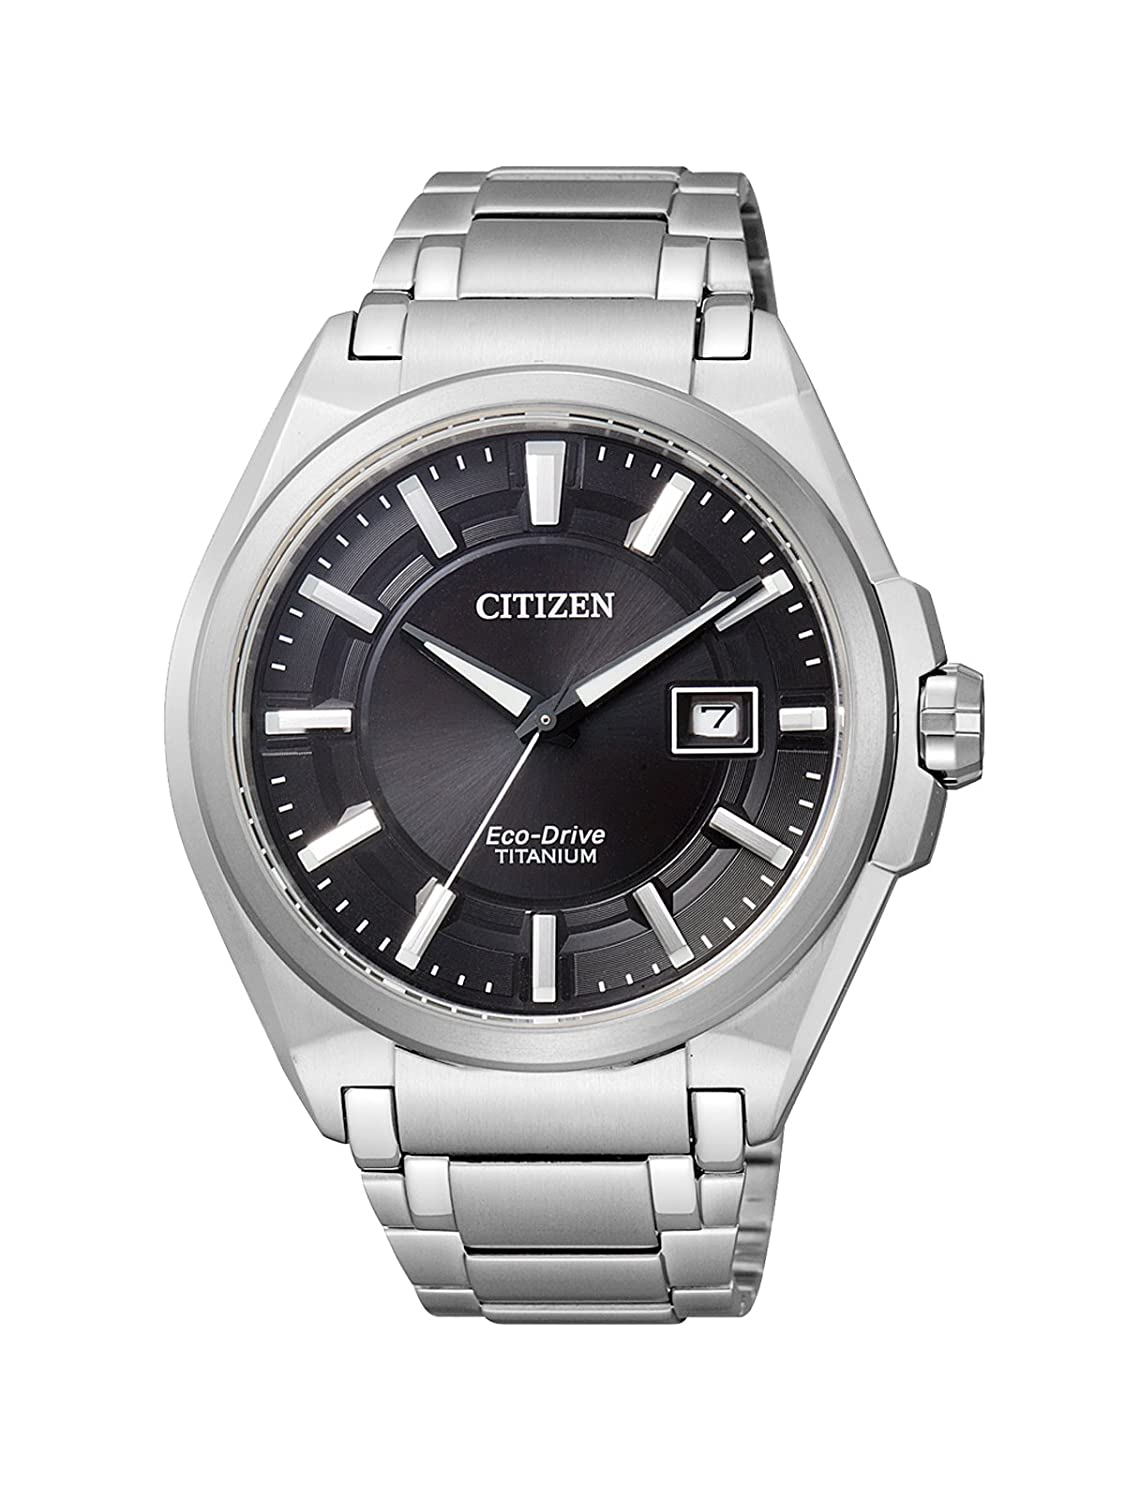 Amazon.com: Citizen Mens Eco-Drive BM6930-57E Silver Titanium Quartz Watch with Black Dial: Citizen: Watches